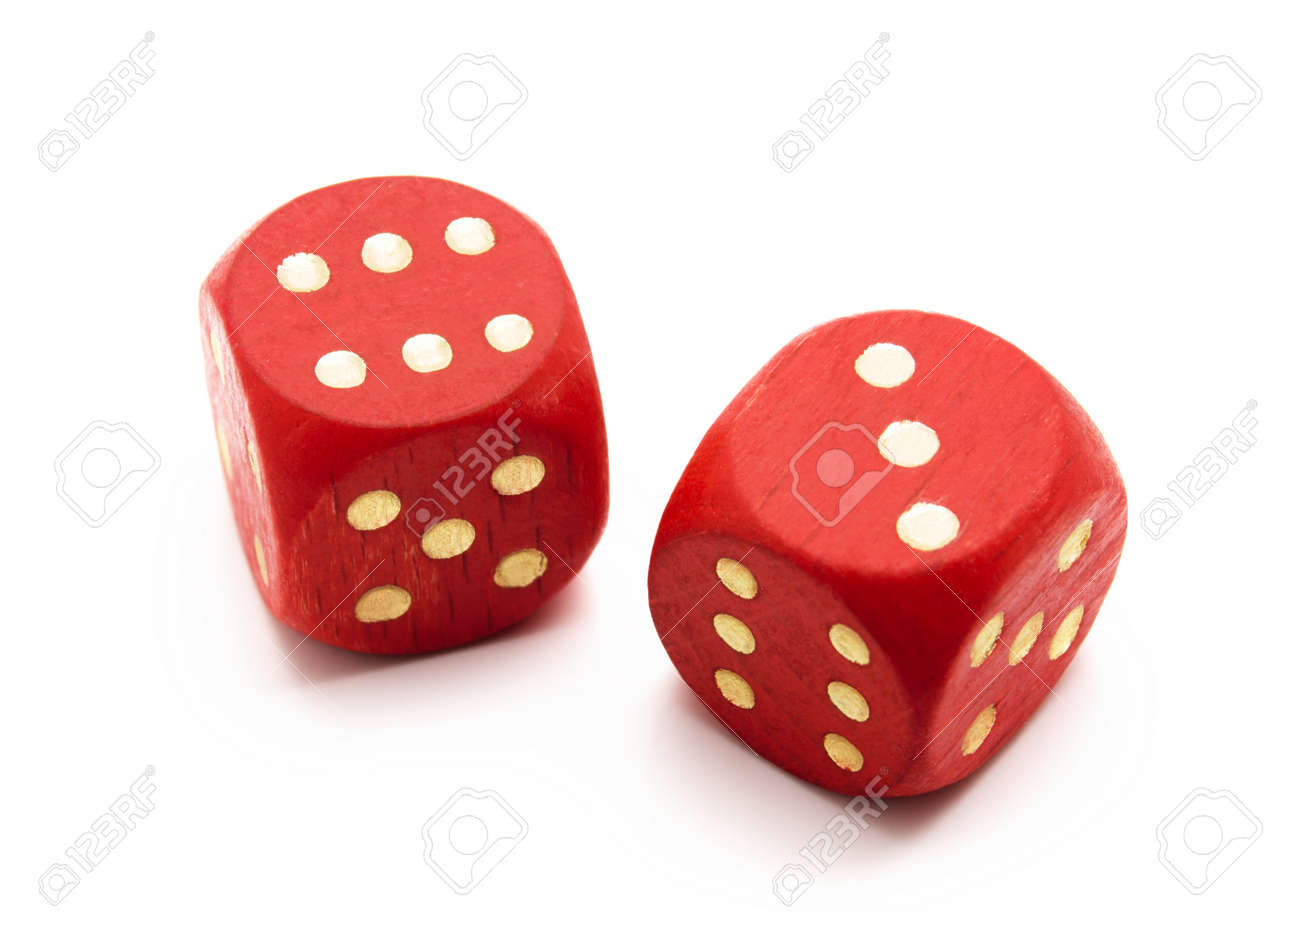 Red wooden dice isolated on white background Stock Photo - 12834322